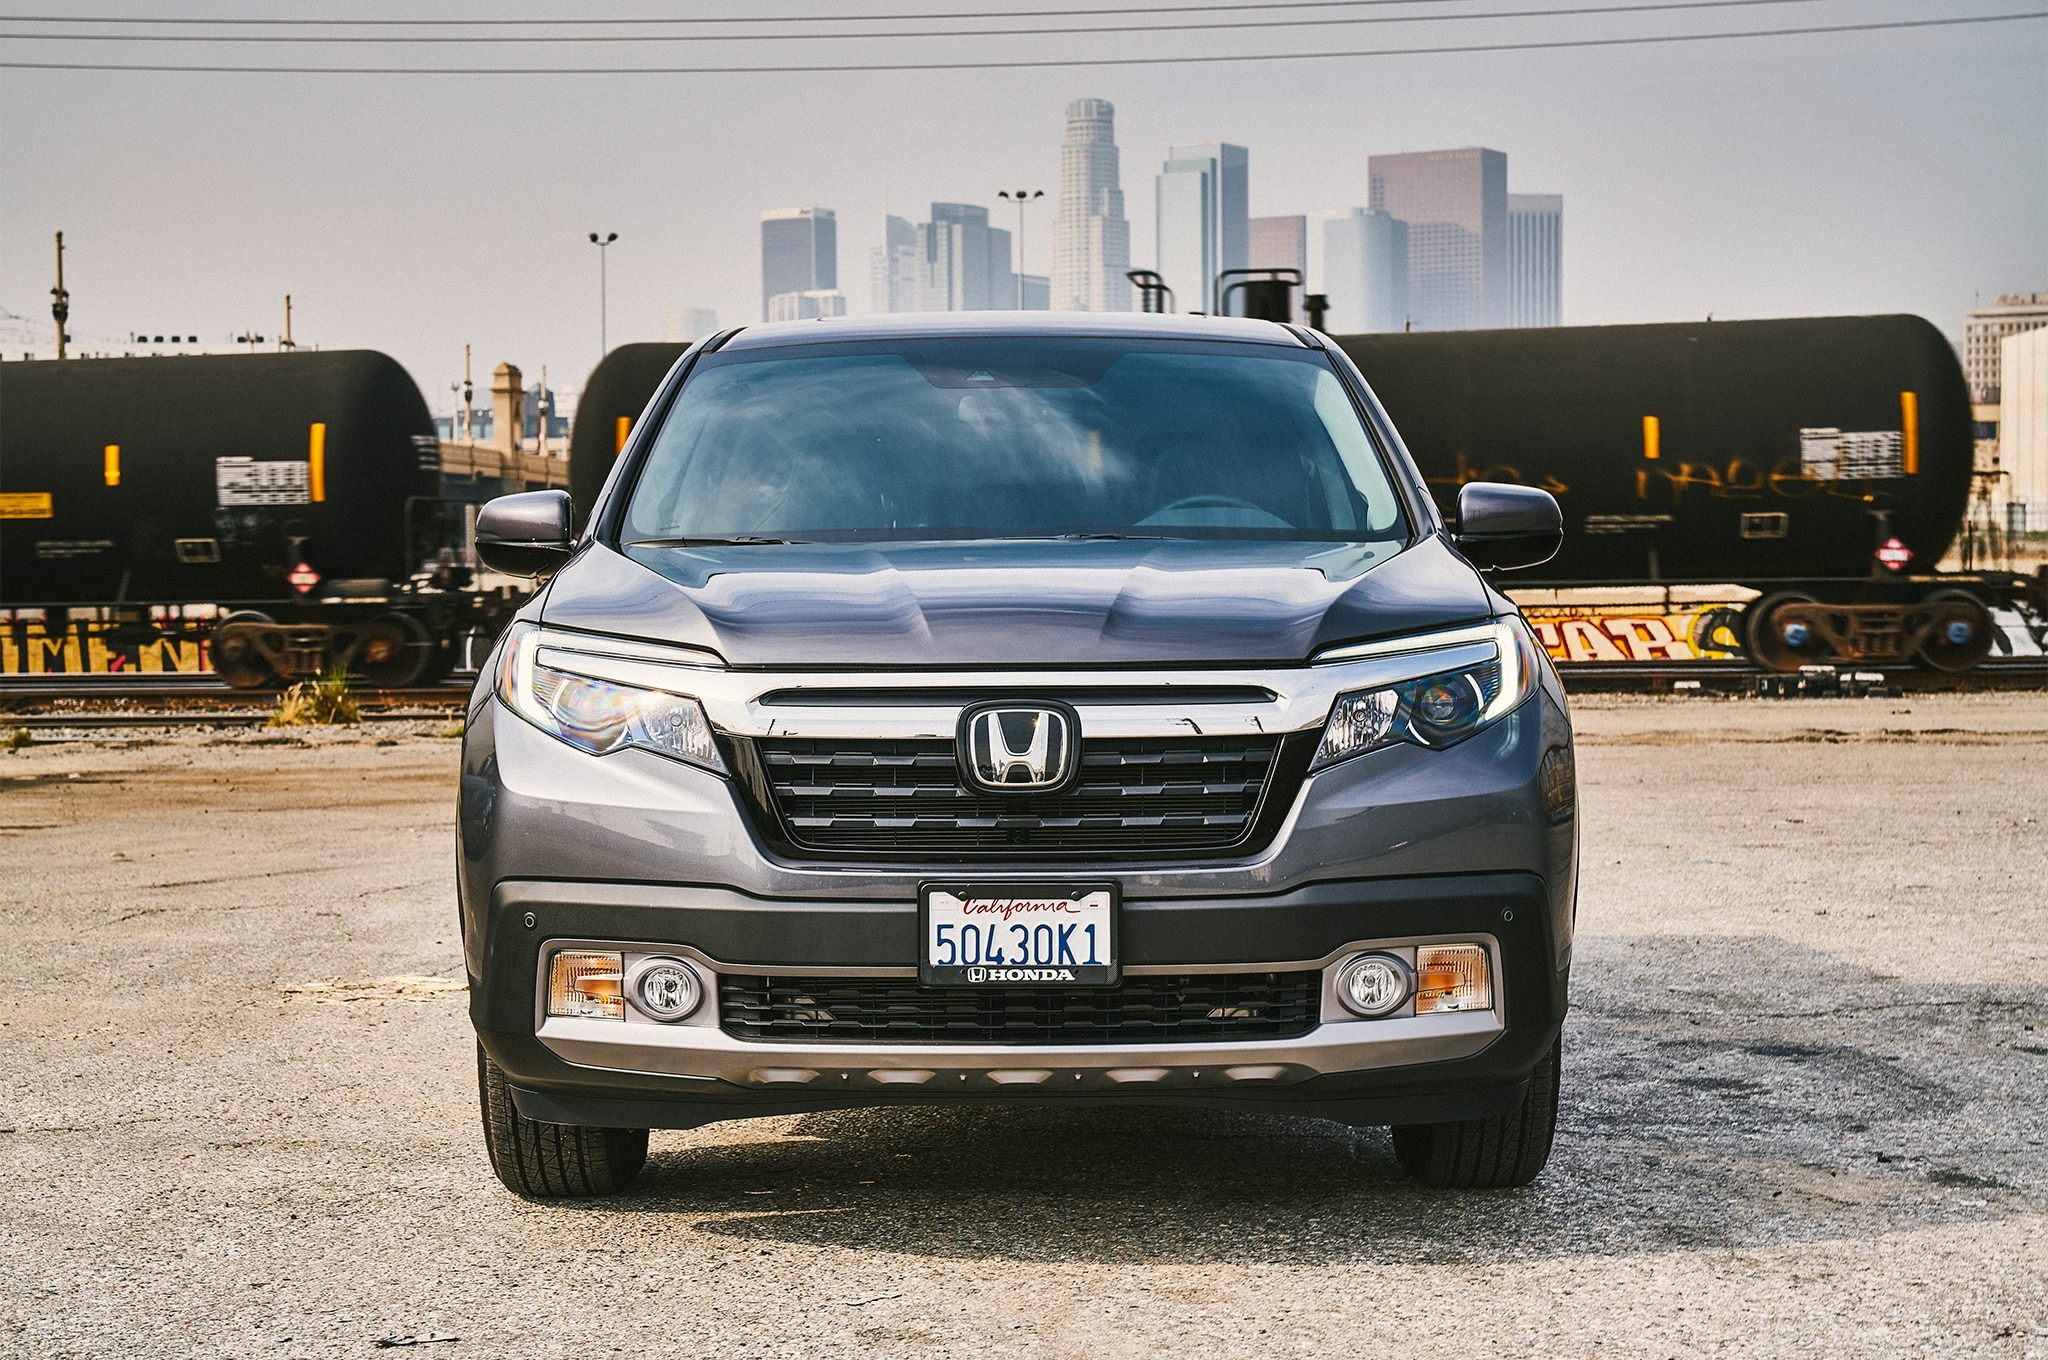 Image Result For Honda Ridgeline Rear View Mirror